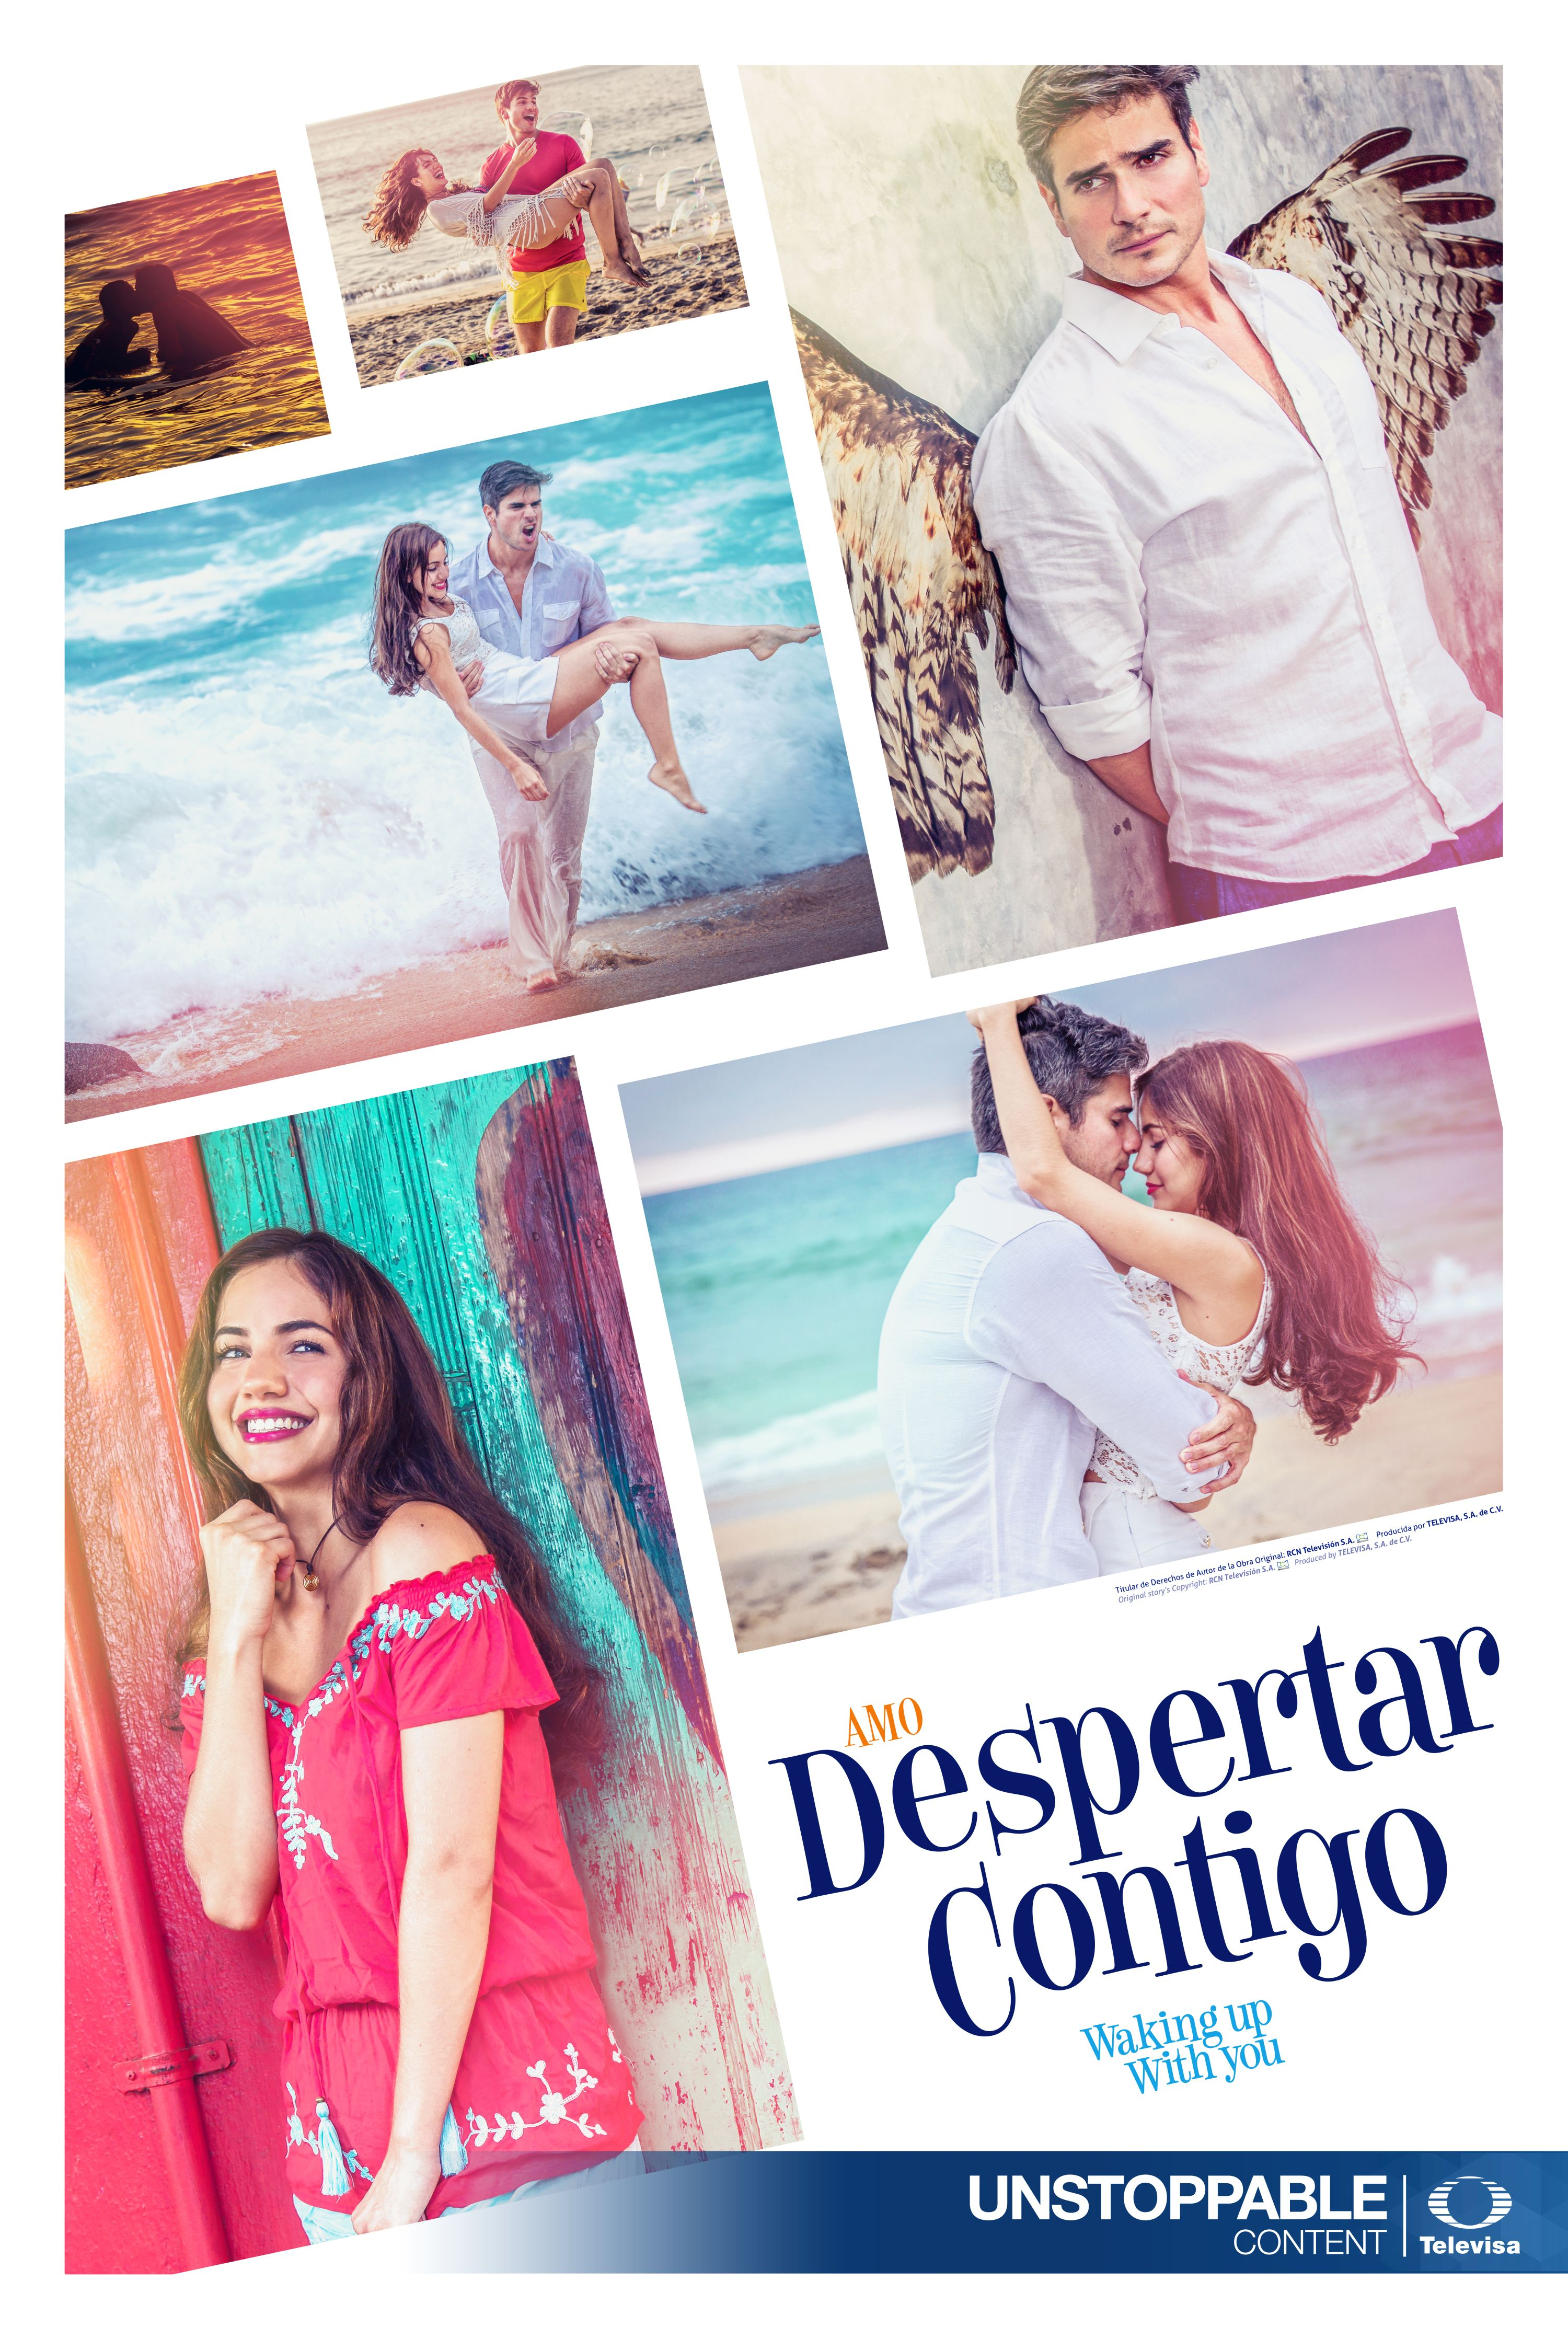 Despertar contigo (TV Series 2016– ) - IMDb